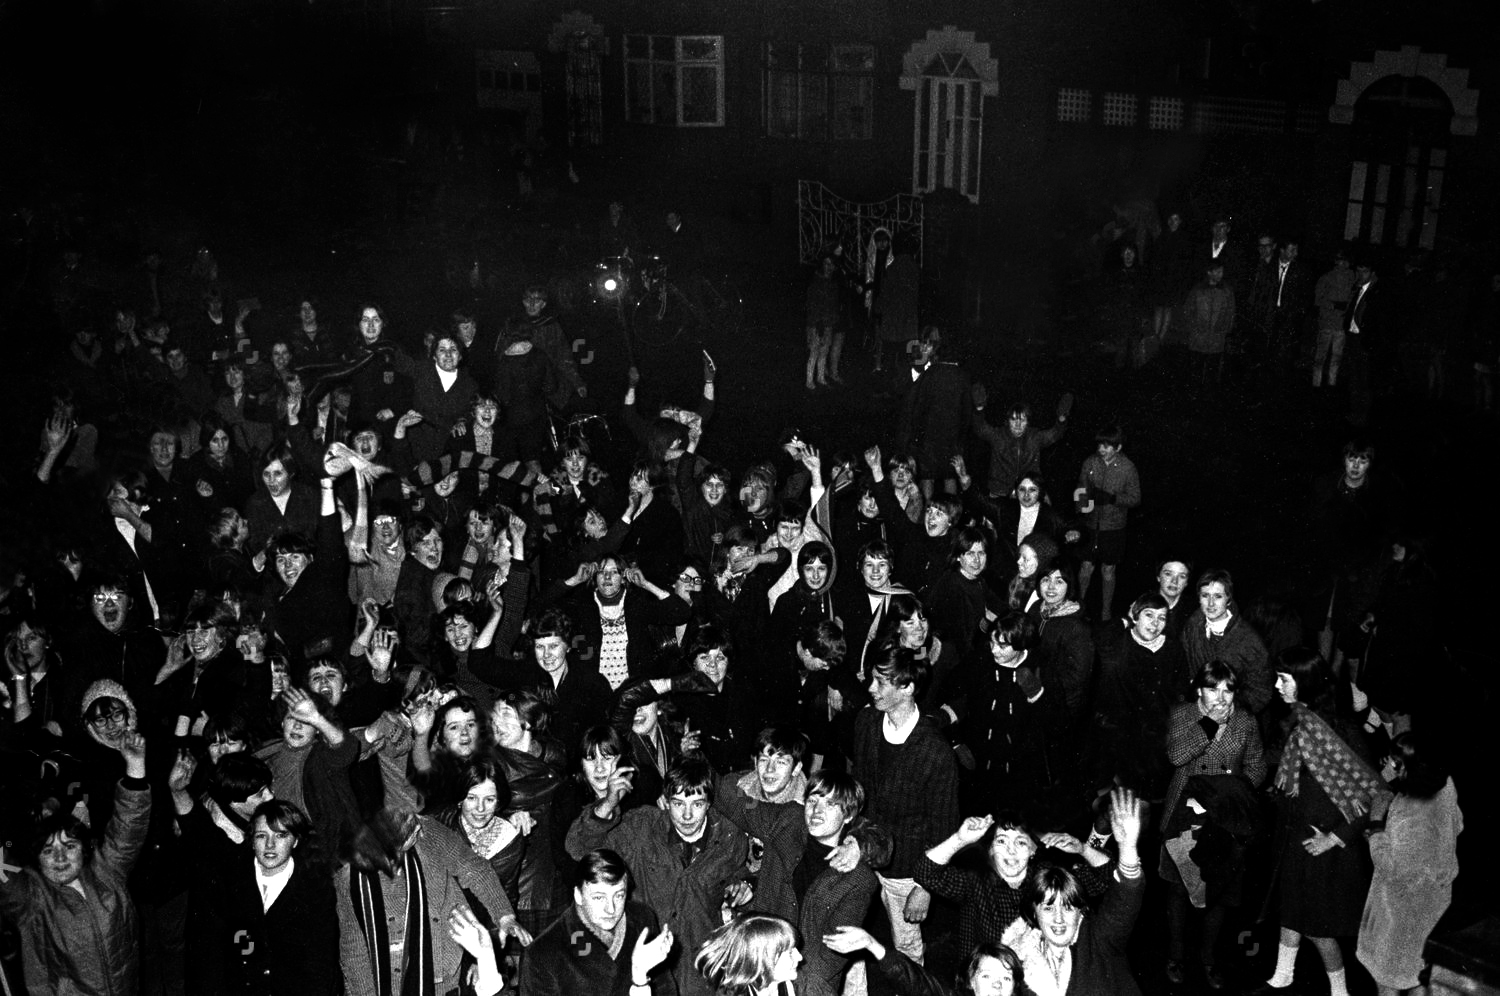 fans-congregate-outside-the-home-of-singer-davy-jones-in-clumber-road-gorton-manchester-davy-jones-died-29-2-2012-1673475a-1500